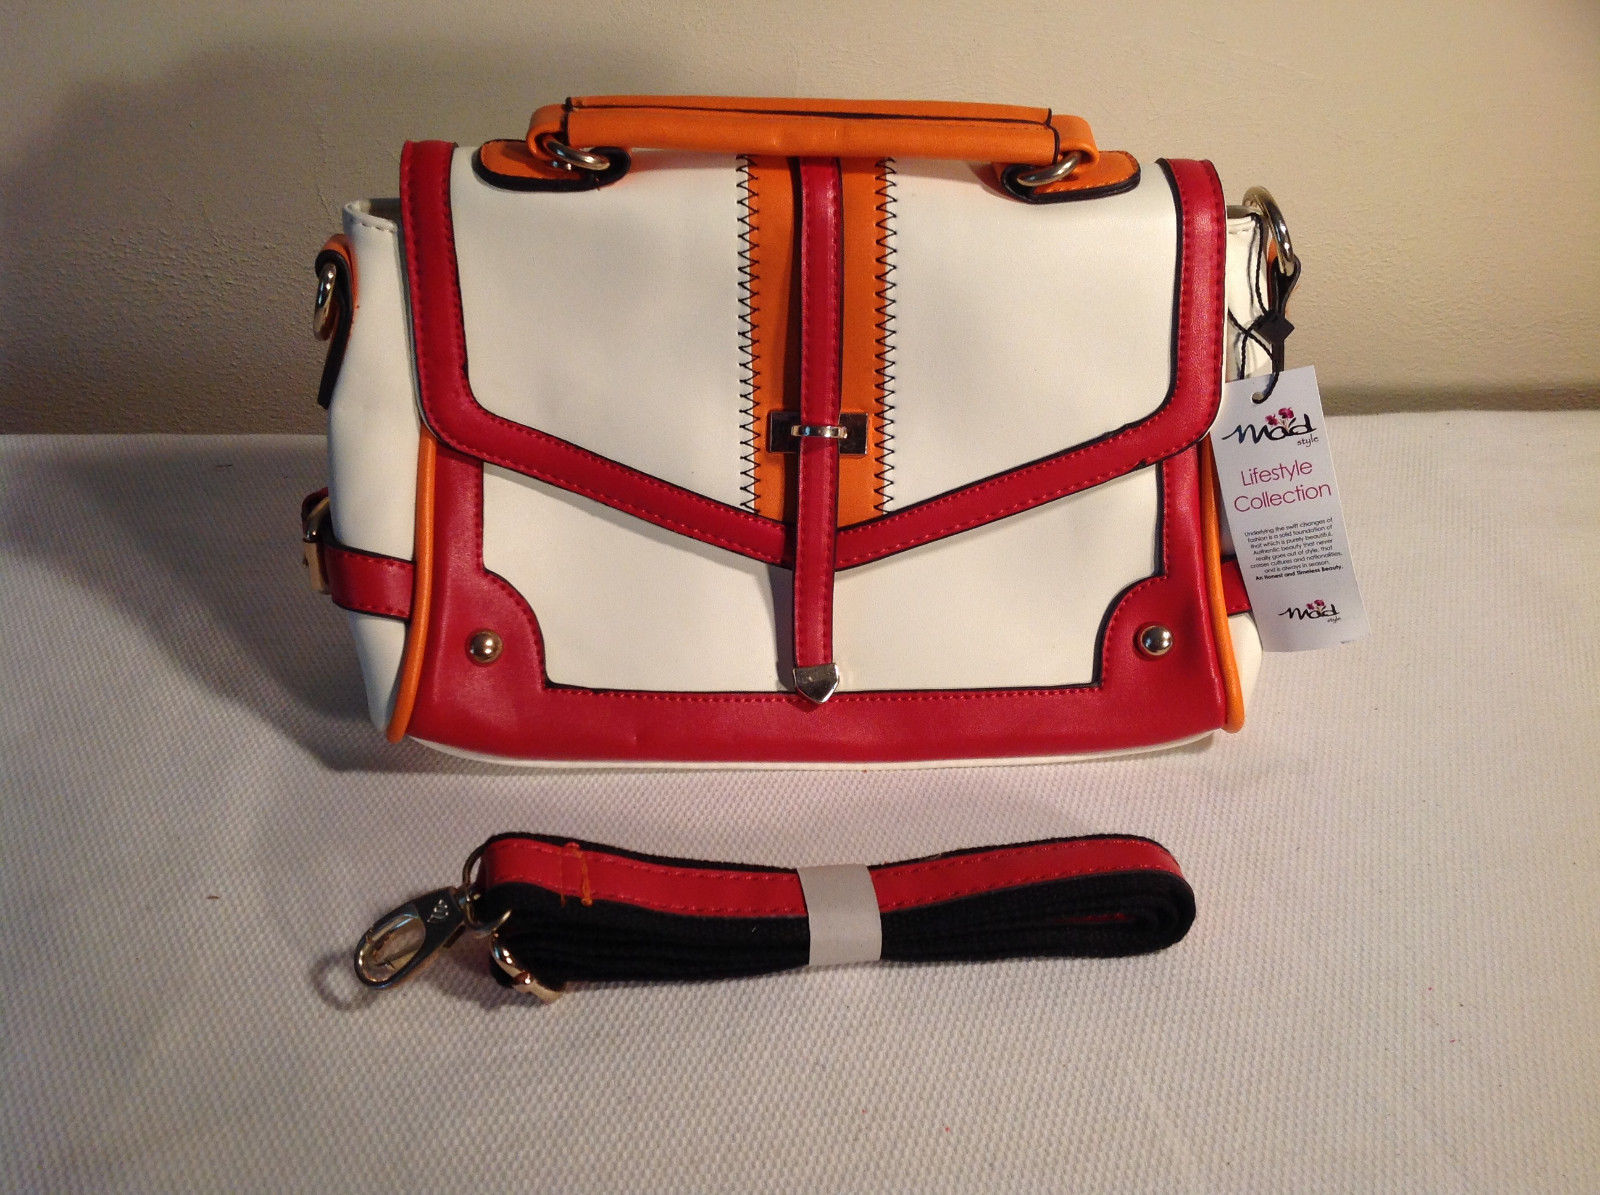 Mad Style Colorful White Red Orange Handbag + Shoulder Strap Faux Leather